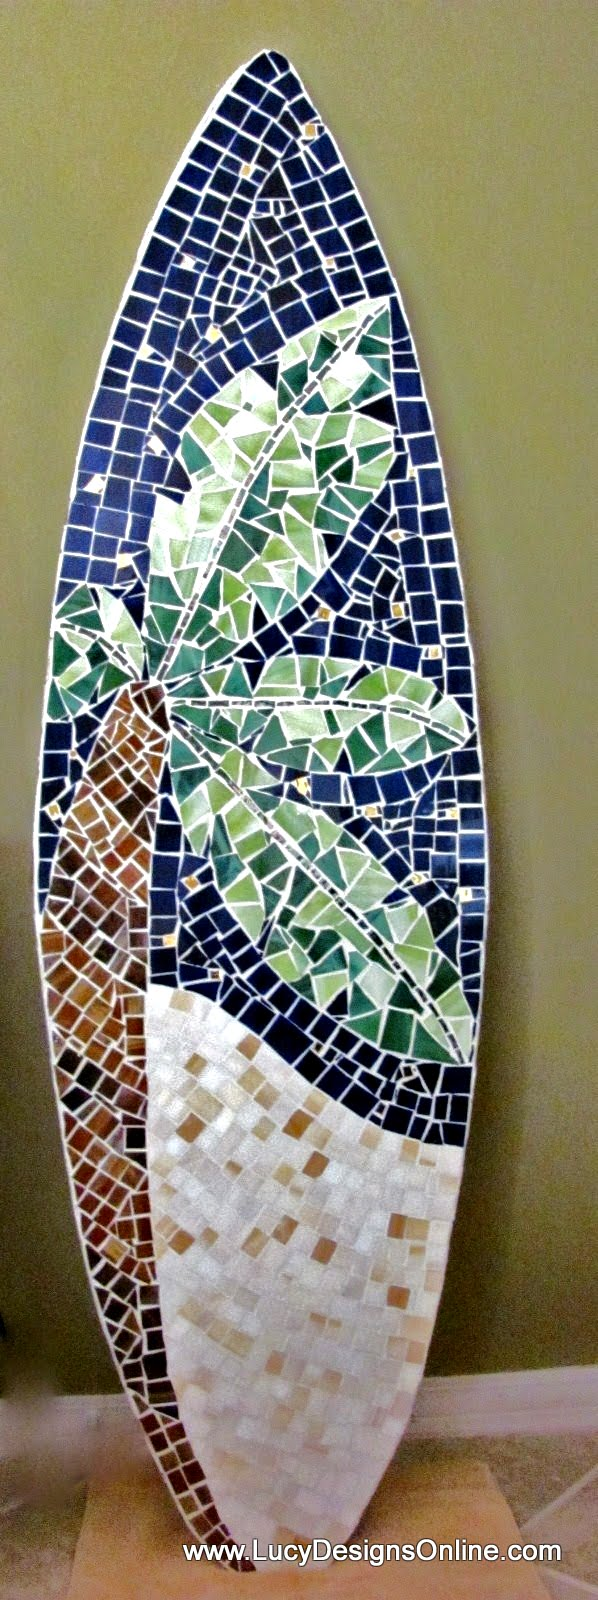 stained glass mosaic surfboard with palm tree